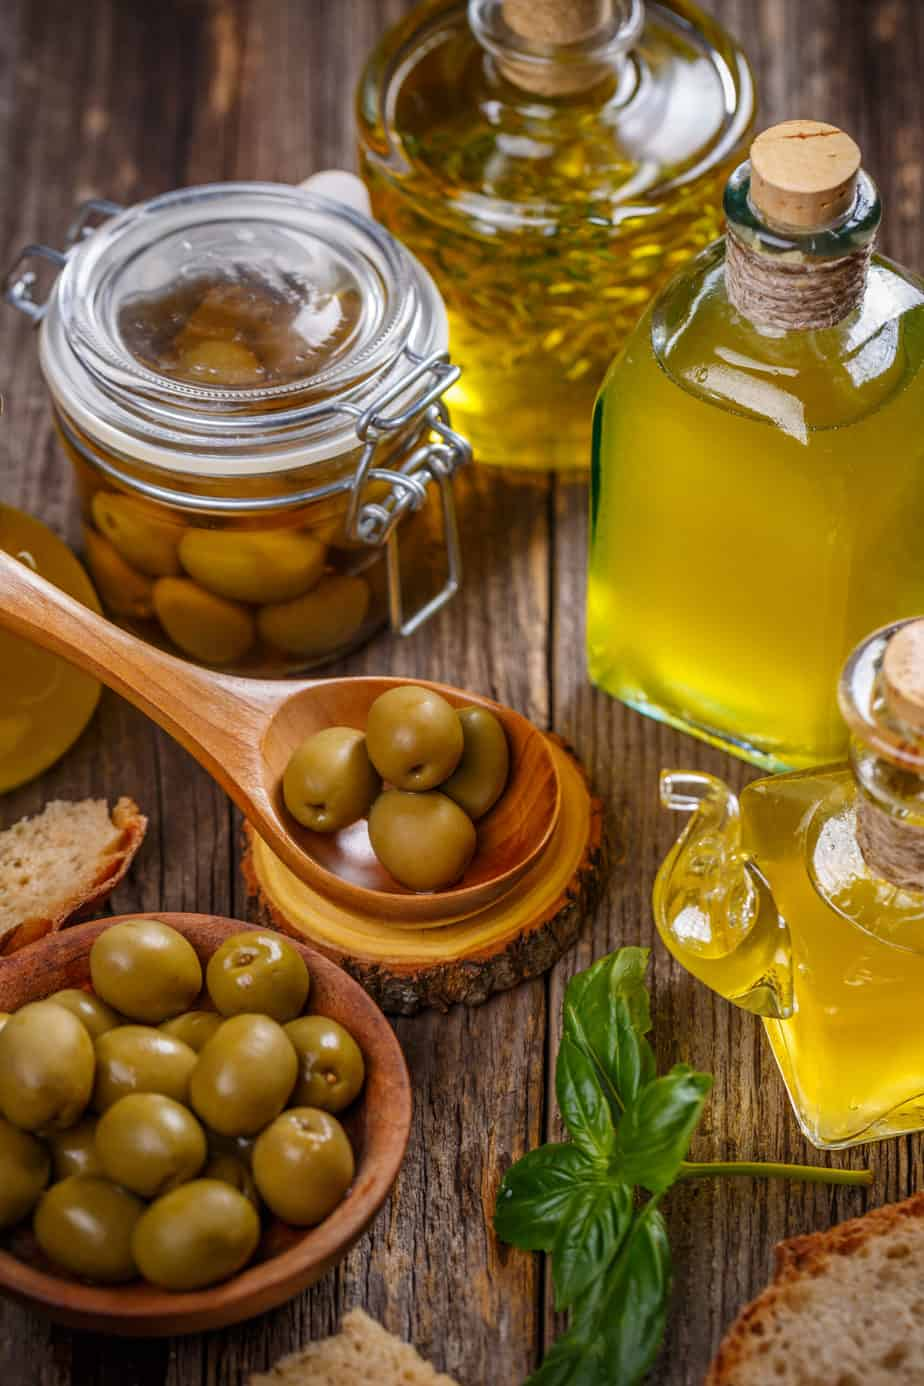 Olives and cold pressed olive oil ready for a feast